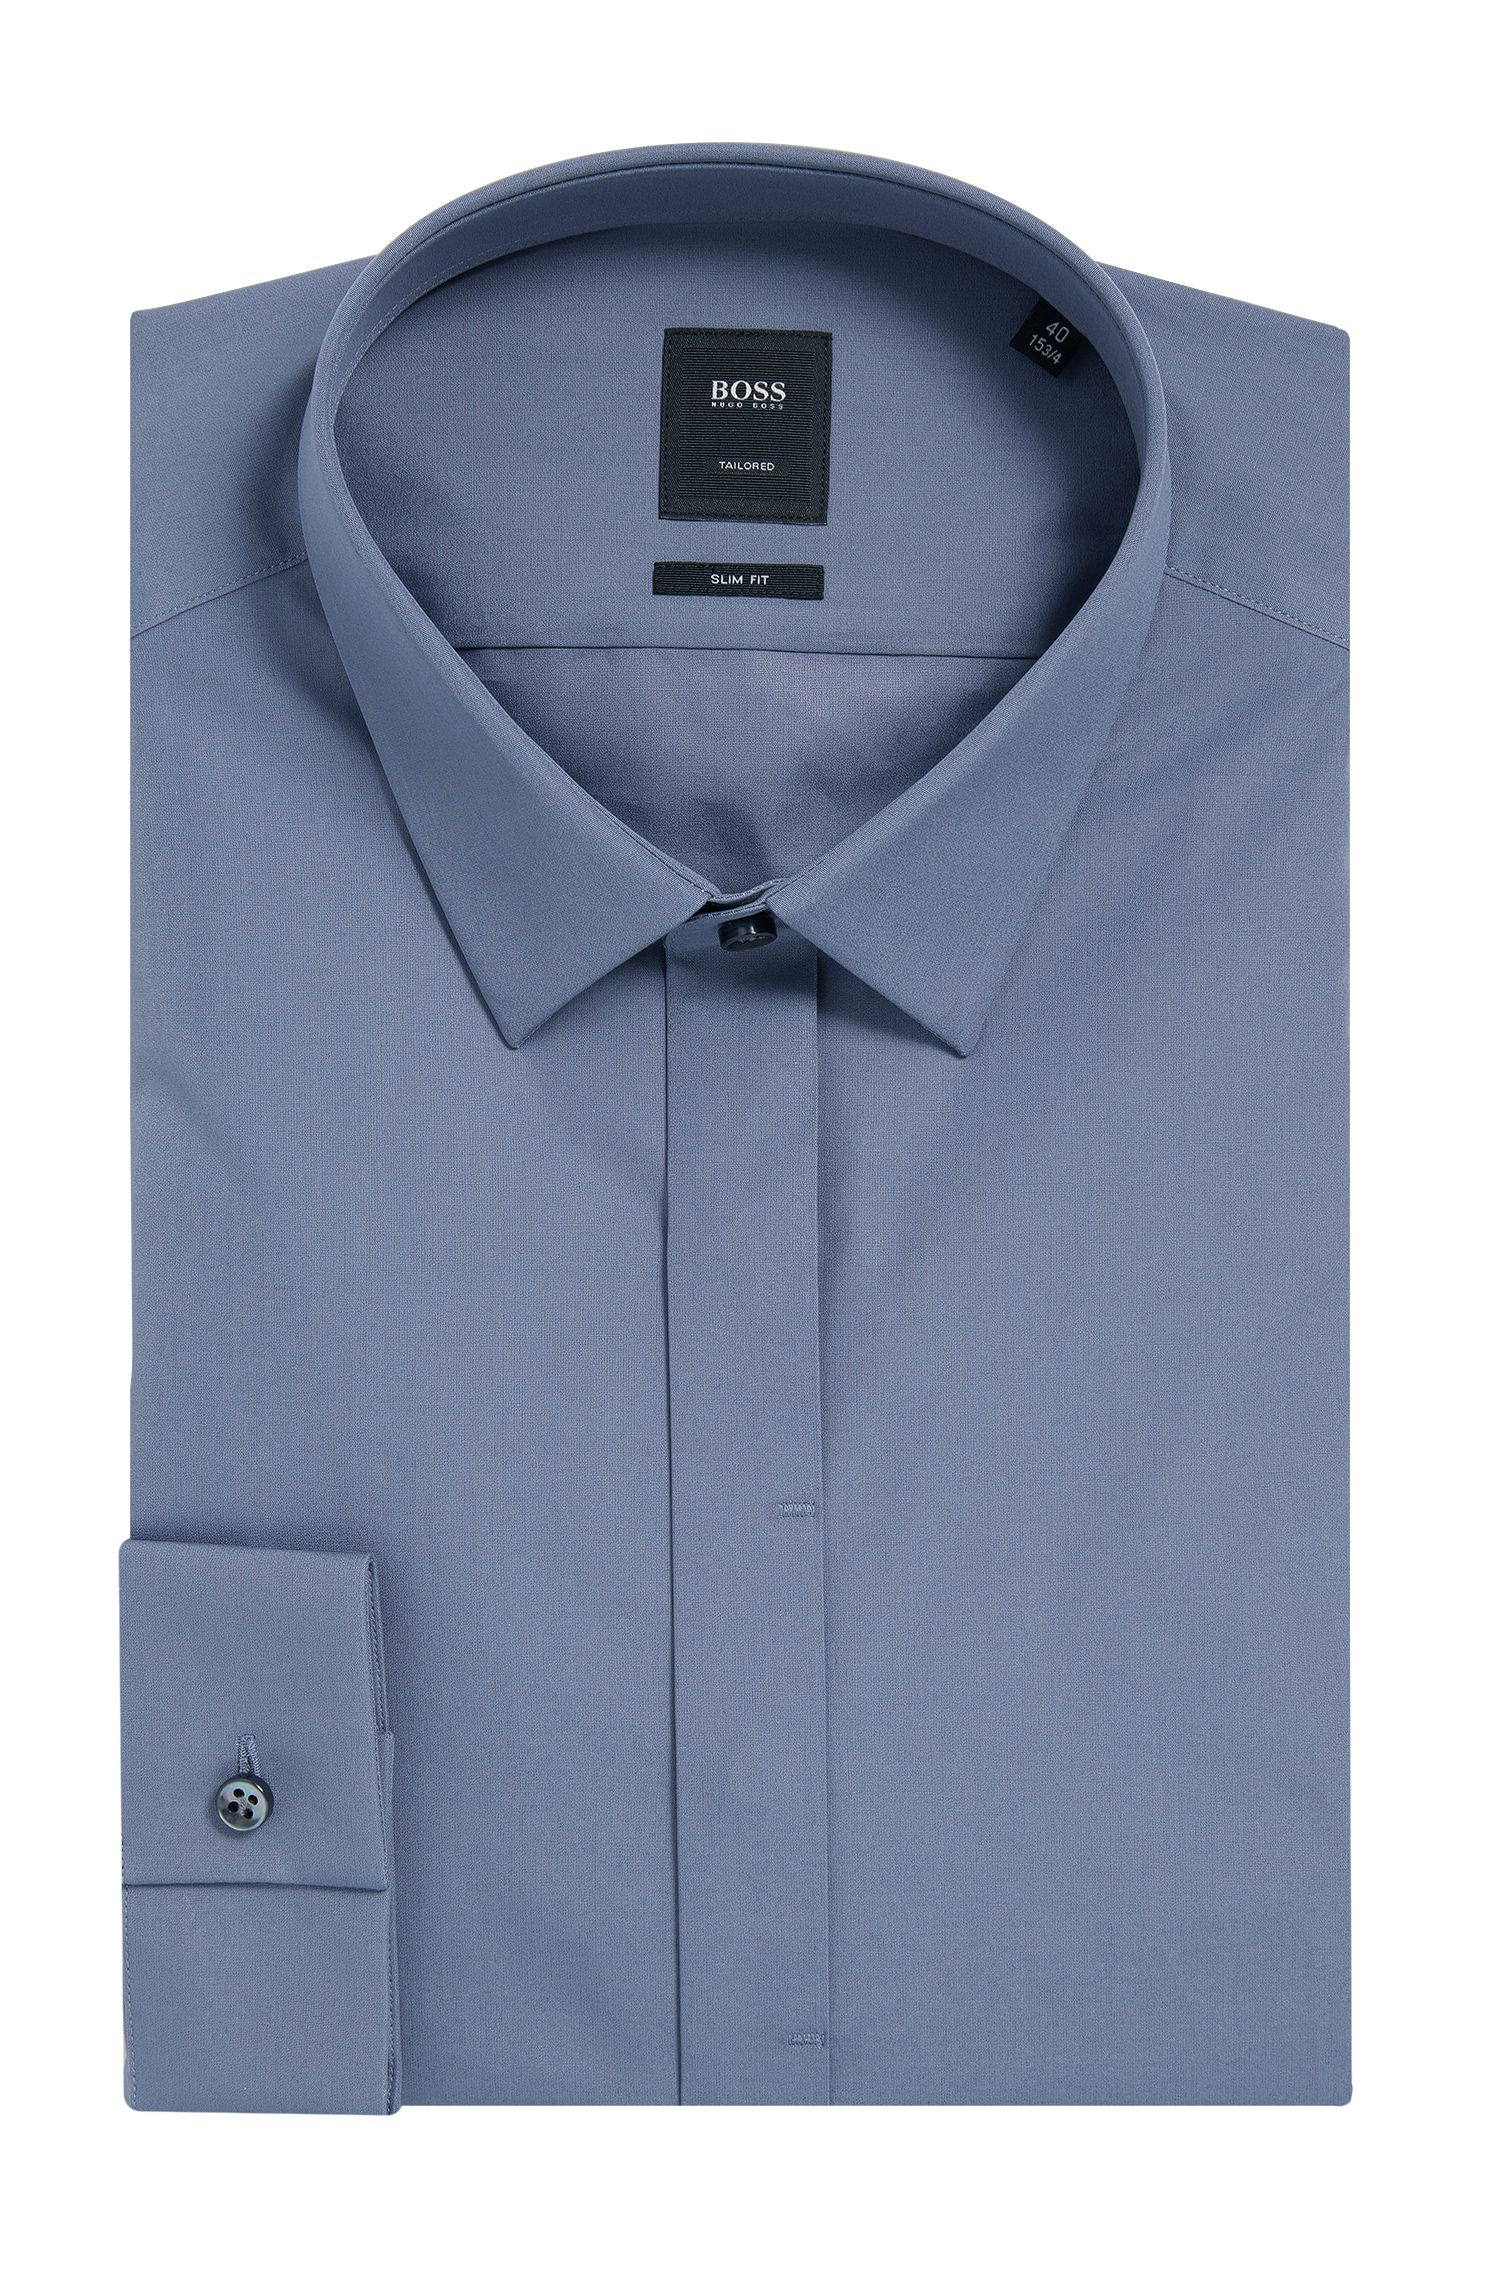 2-Ply Cotton Dress Shirt, Slim Fit | T-Craig